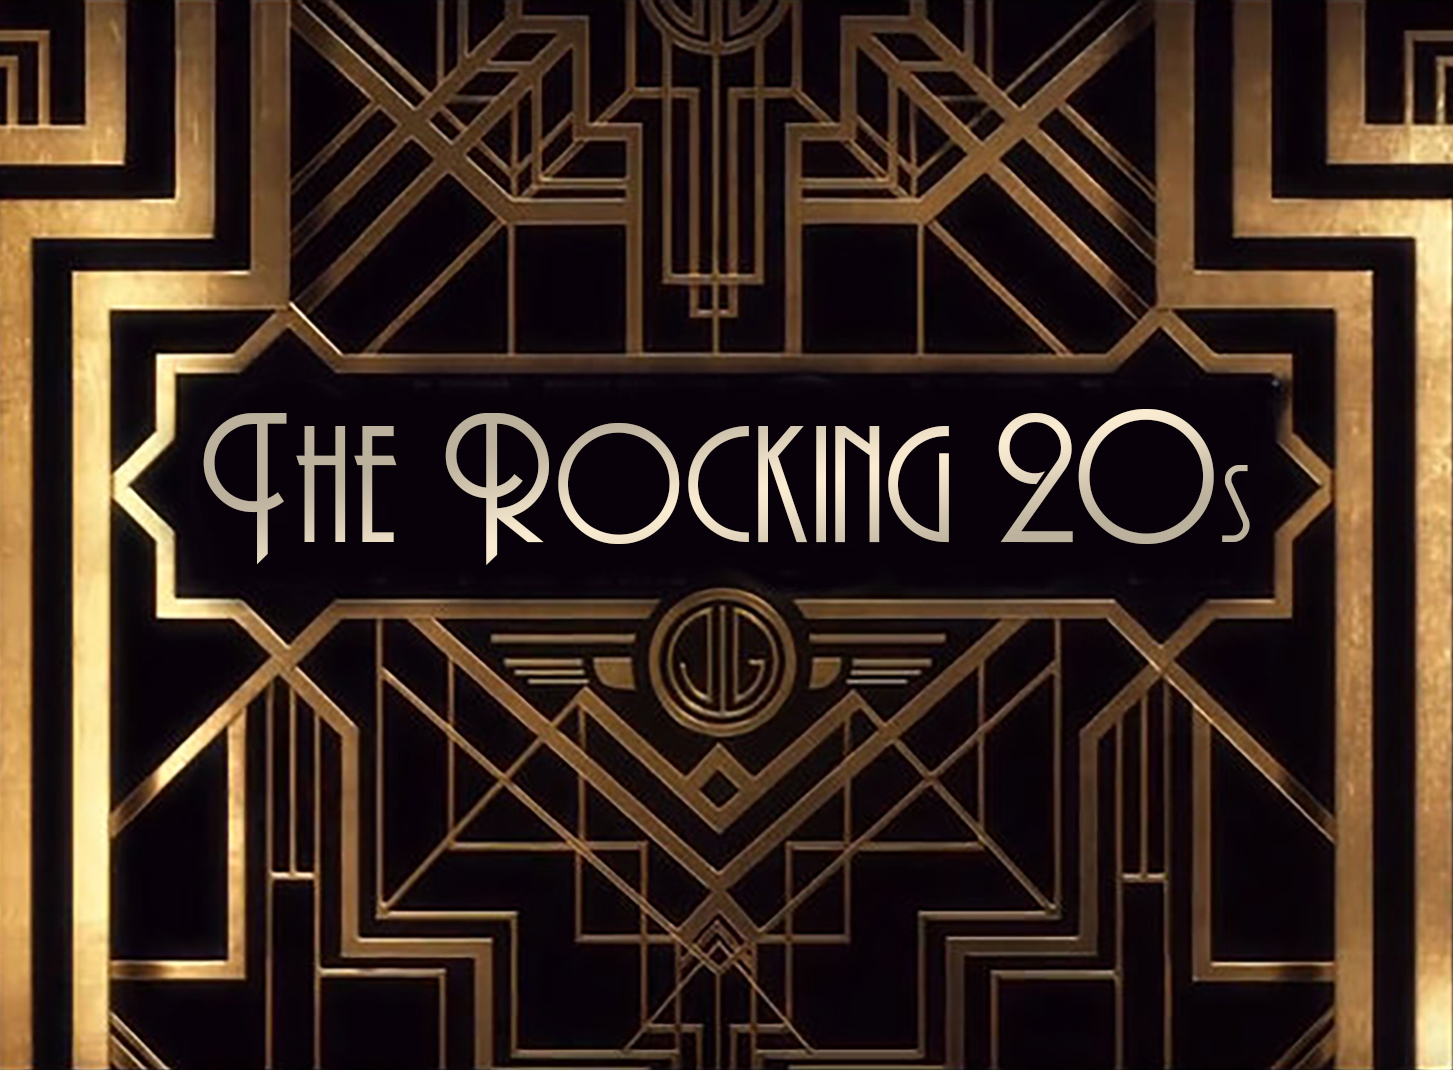 The Rocking 20s